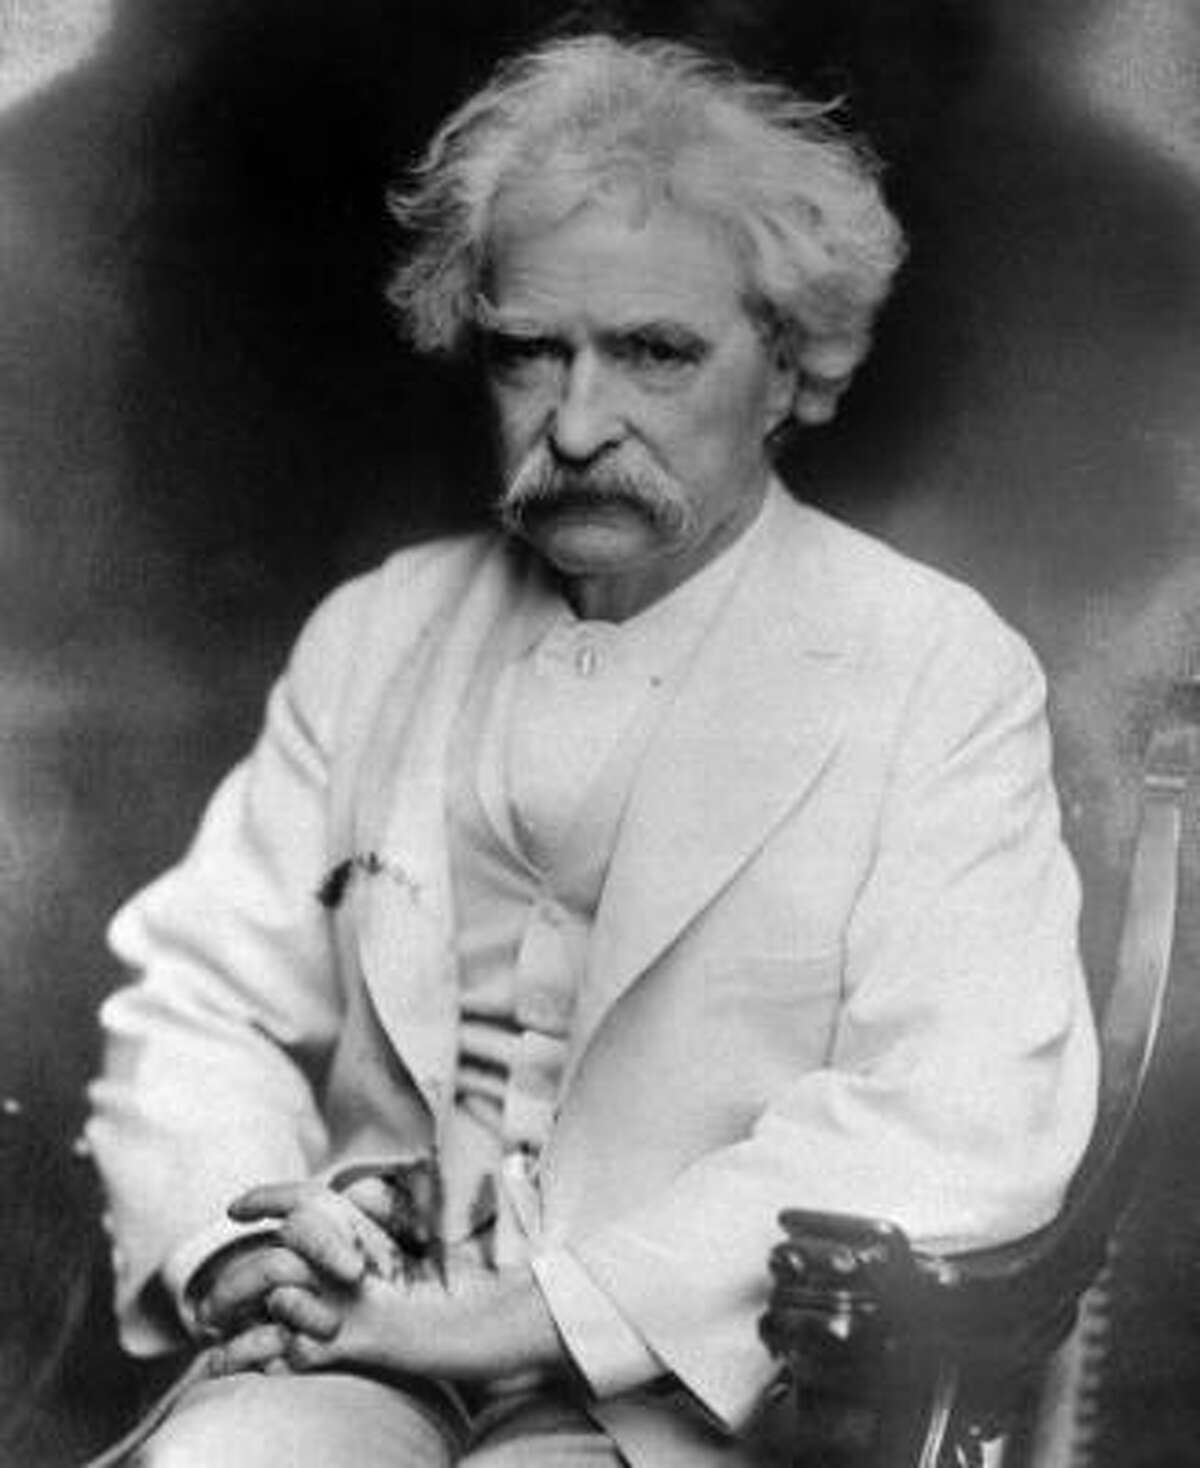 Samuel Langhorne Clemens, better known under his pen name, Mark Twain,  wrote such classics as